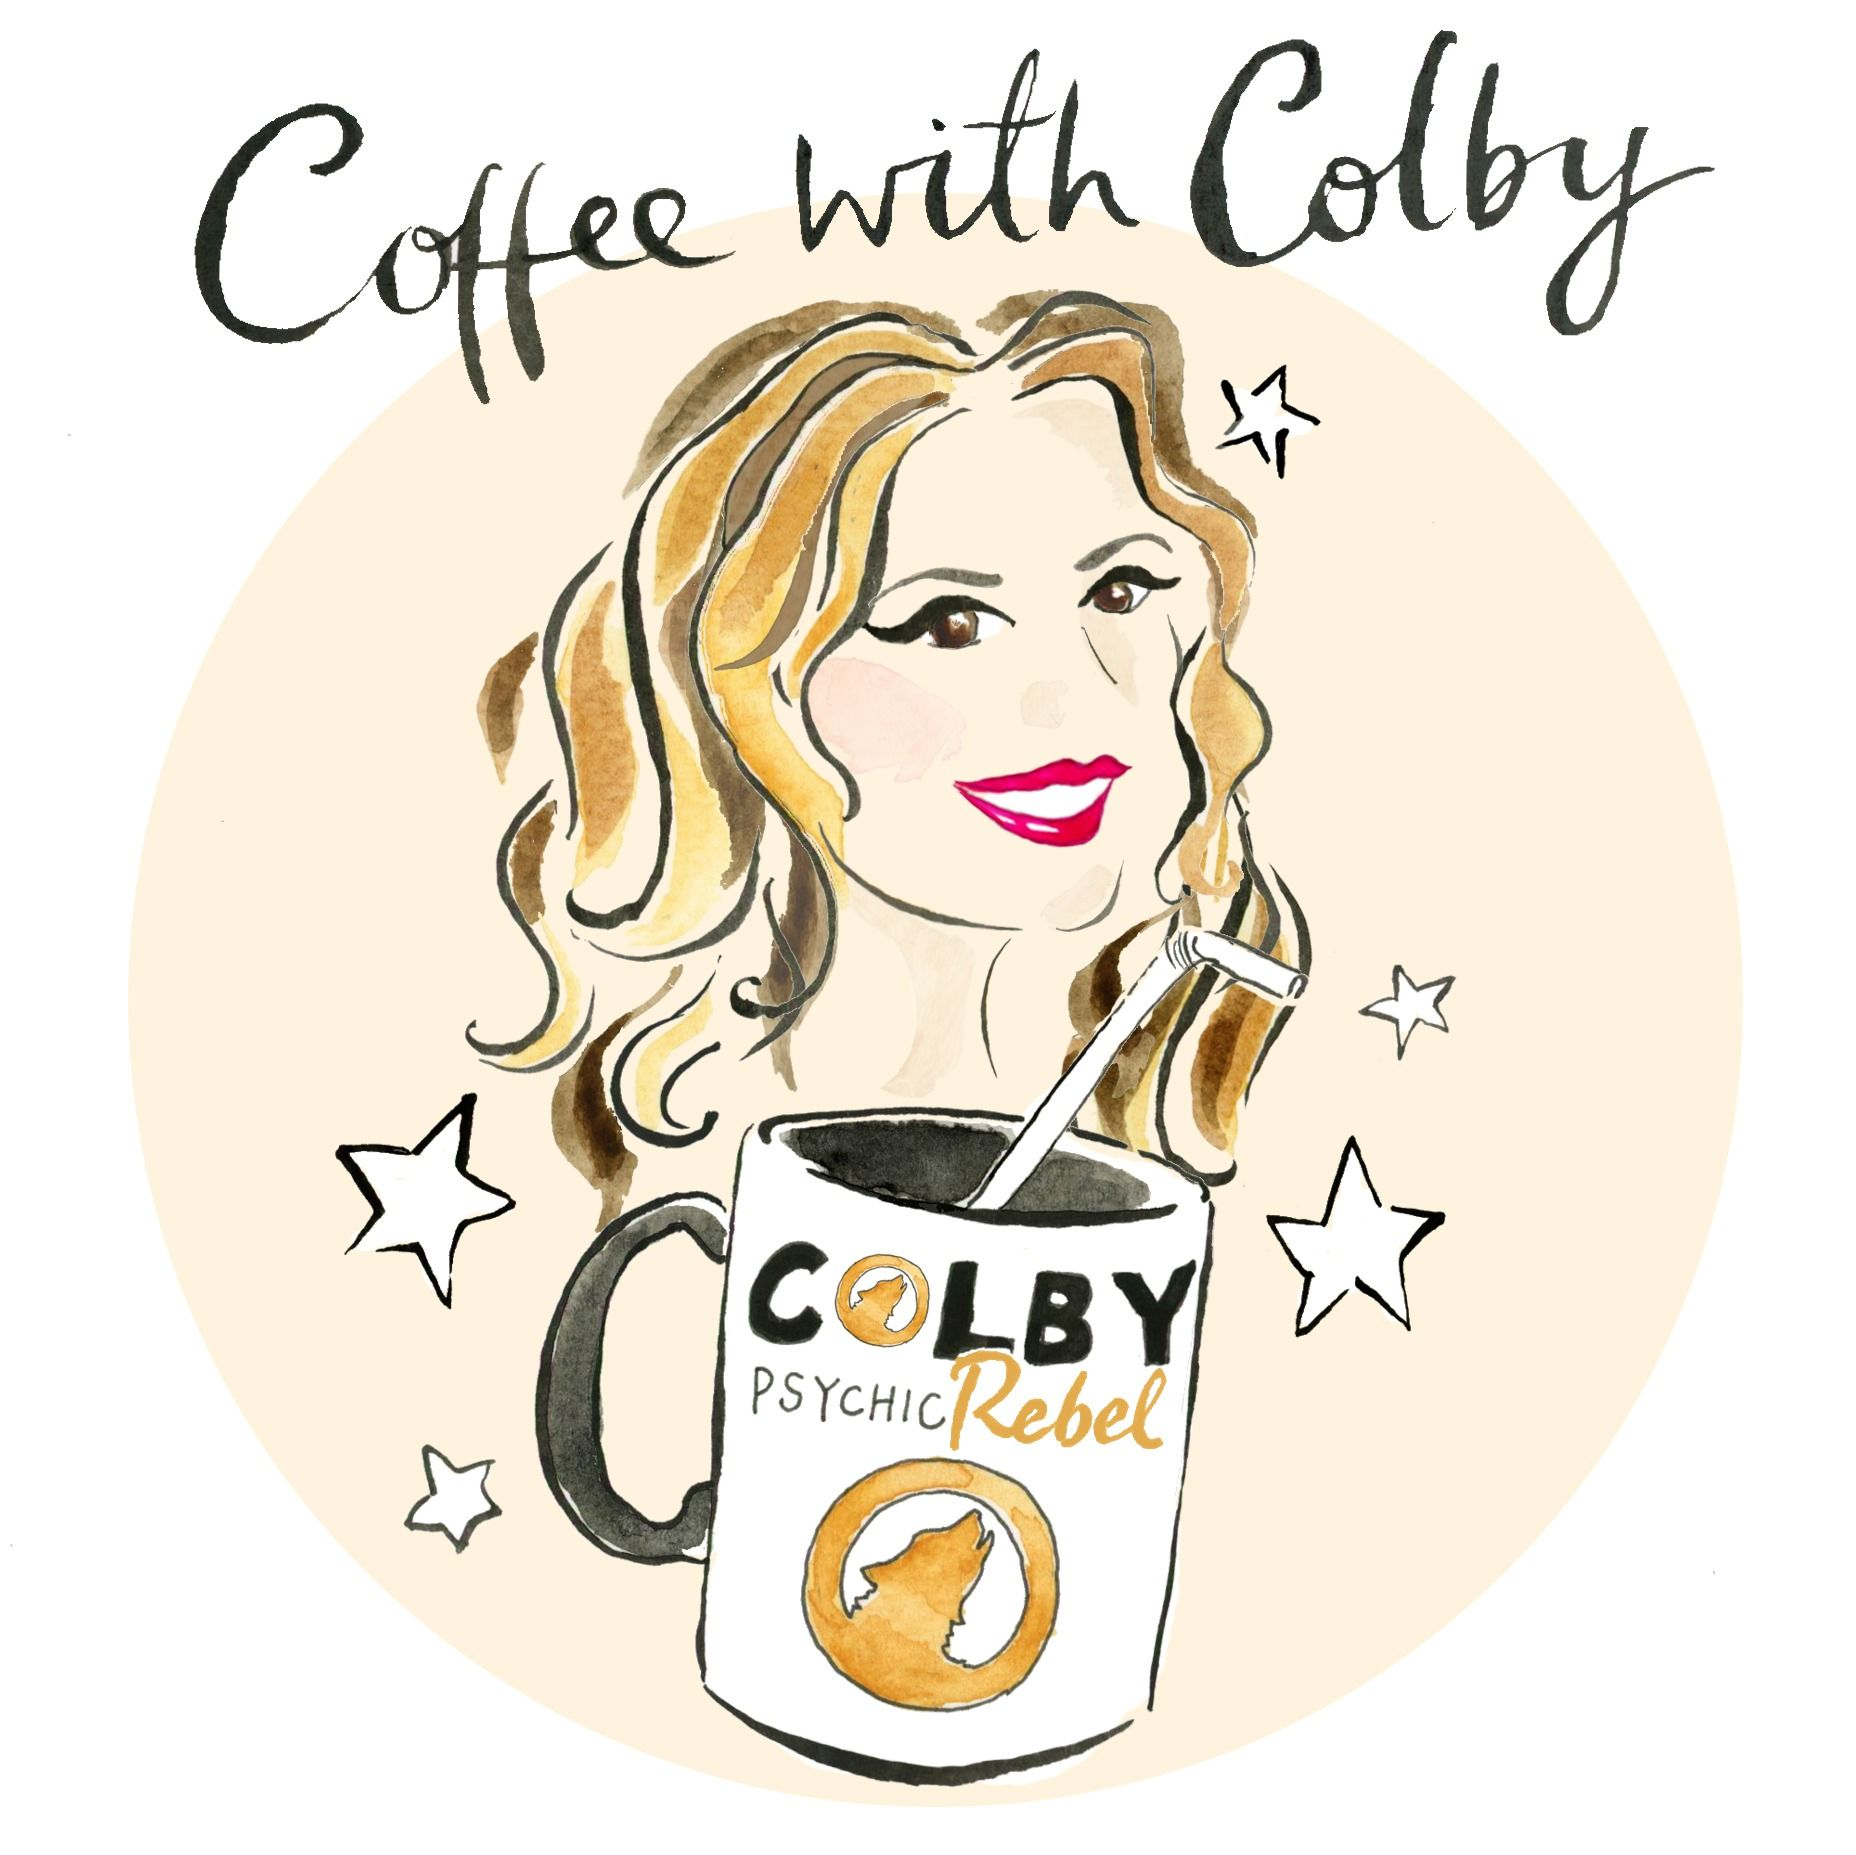 Ep 525 How To Raise Your Vibration-Coffee with Colby